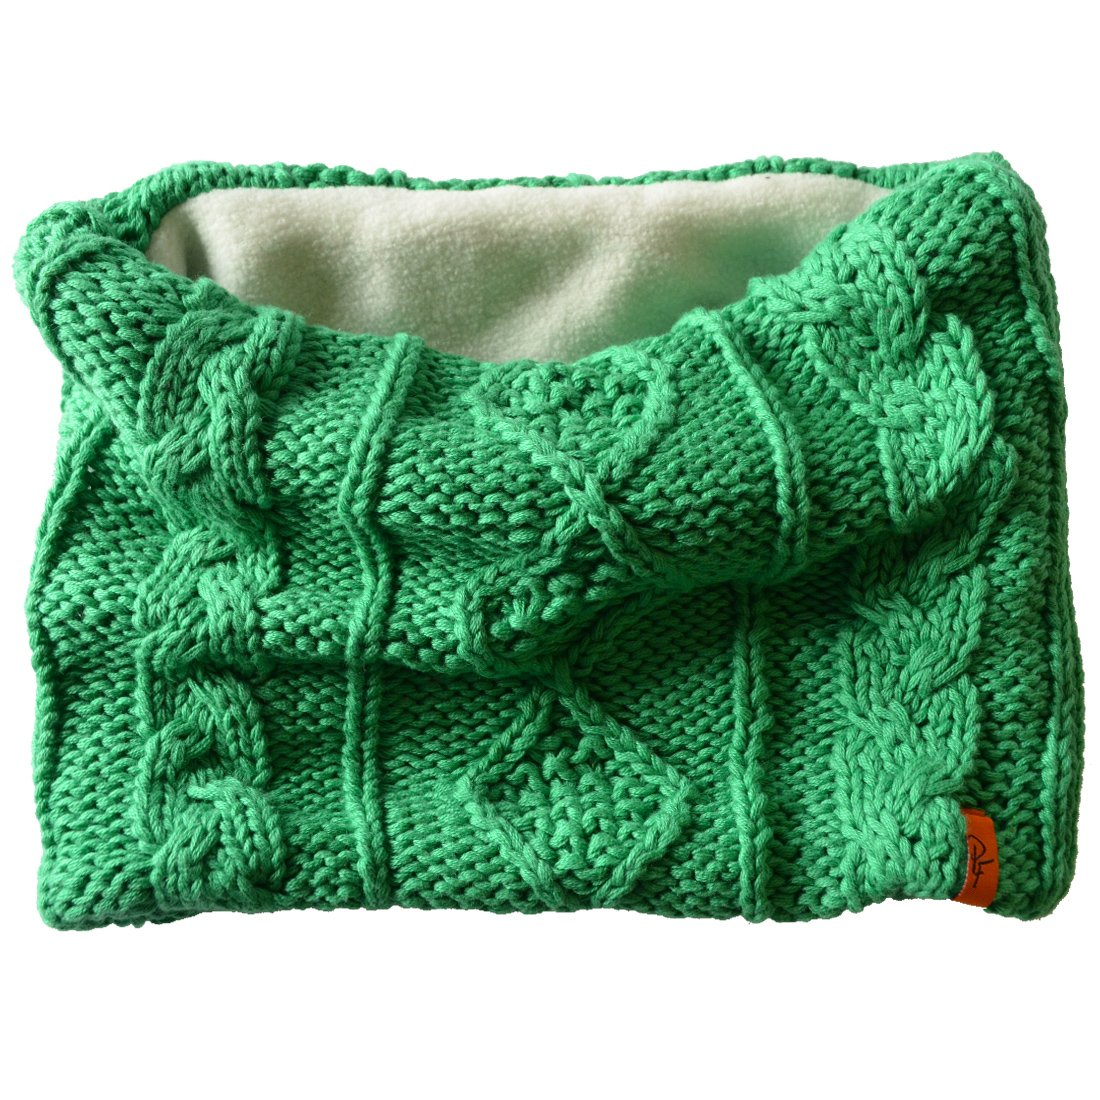 Patrick Francis Kids Chunky Knitted Style Snood with Fleece Insert, Green Colour